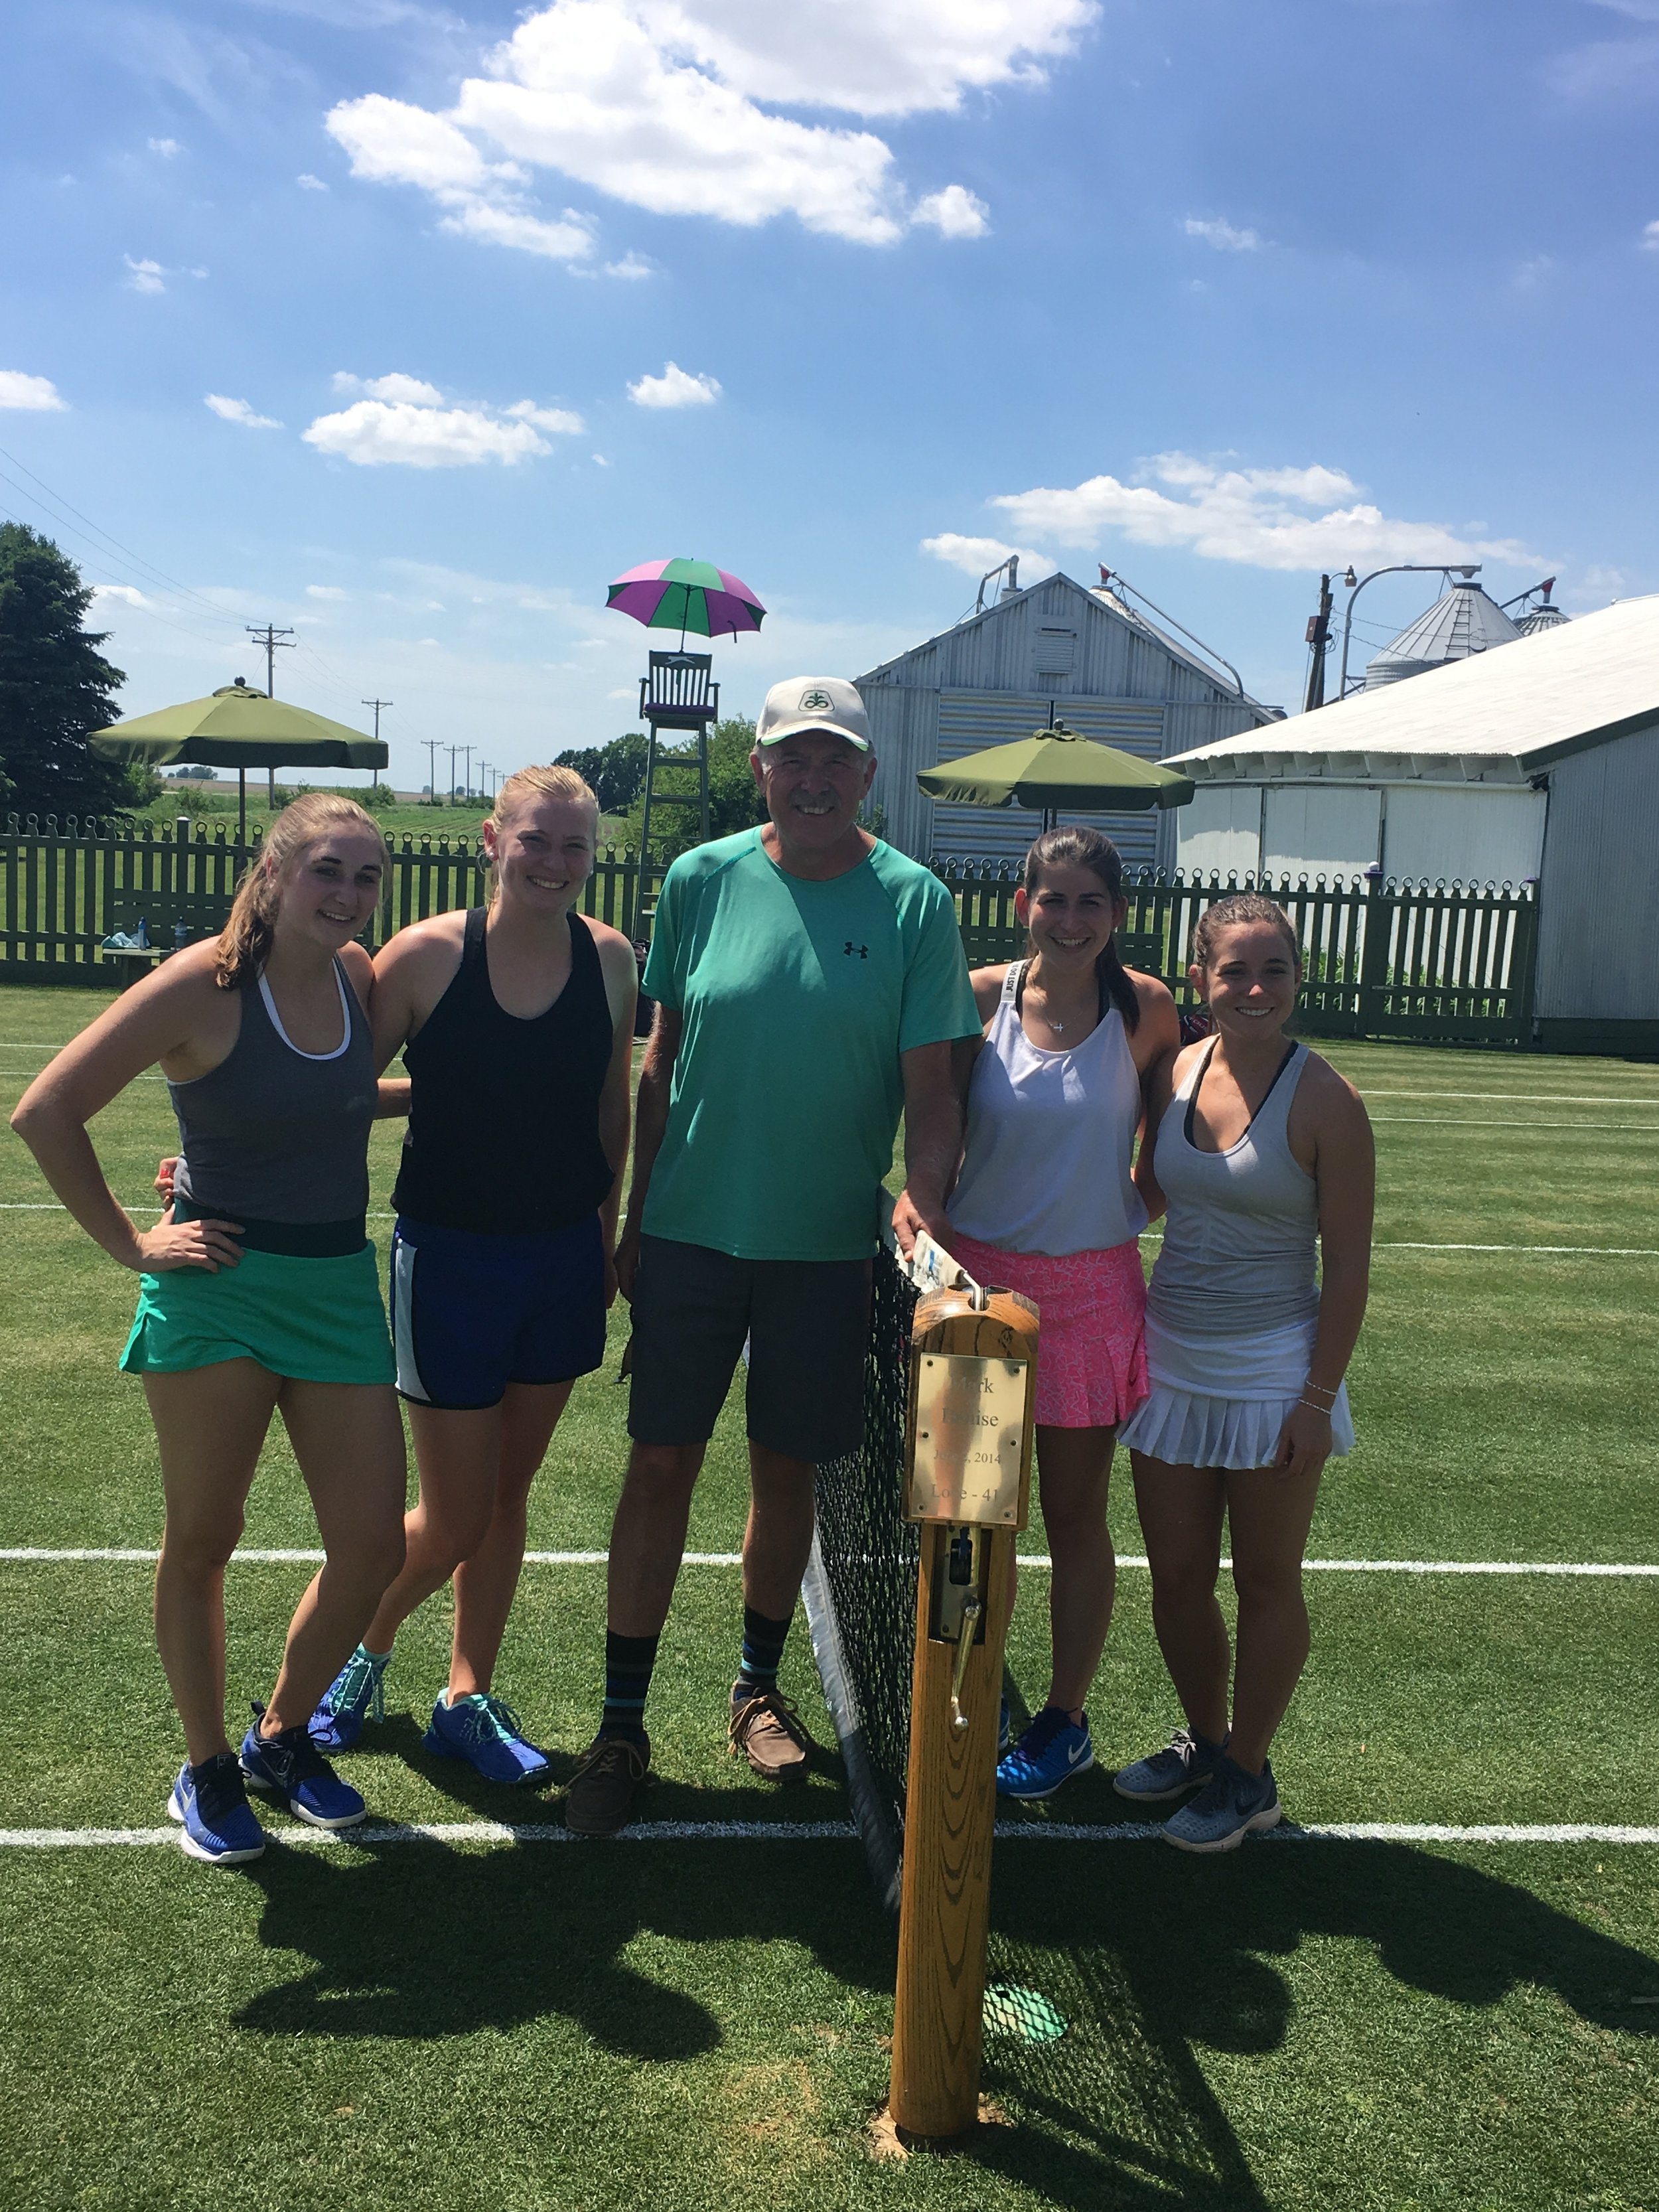 Pictured are members of the 2018-2019 Saint Mary's University of Minnesota women's varsity tennis team and Mark Kuhn